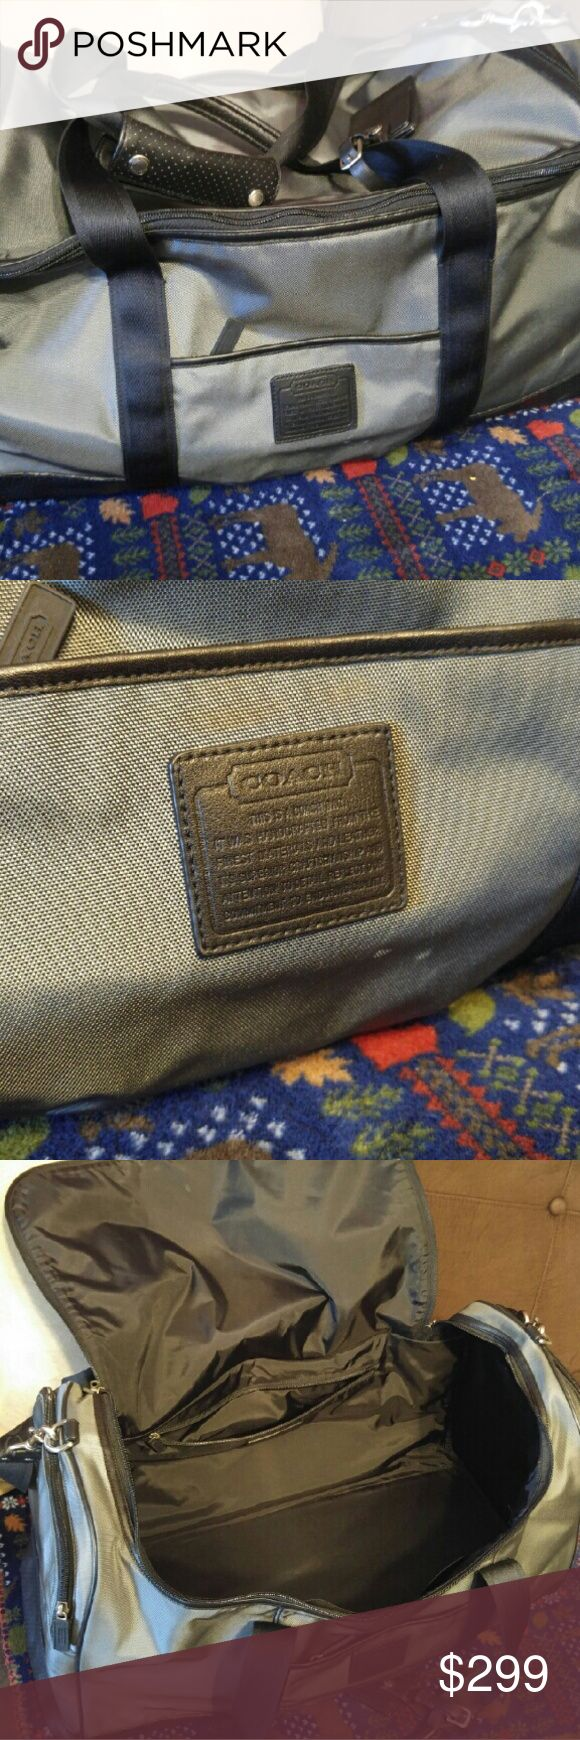 Authentic Coach duffle Authentic grey and black Coach luggage. Duffle bag style with 2 side pockets, small front pocket, large back pocket. This bag is in great condition- barely every used. Coach Bags